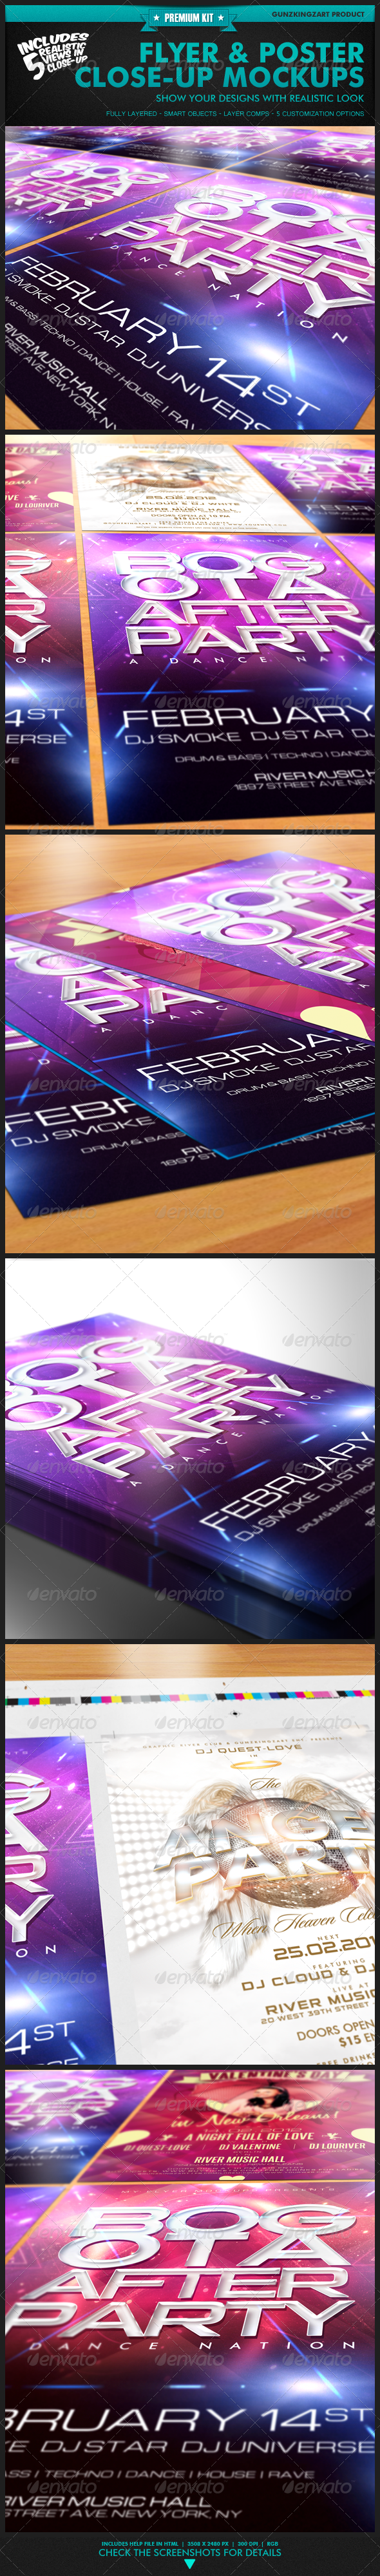 Graphic River Flyer & Poster Close-Up Mockups Premium Kit Graphics -  Product Mock-Ups 1495825